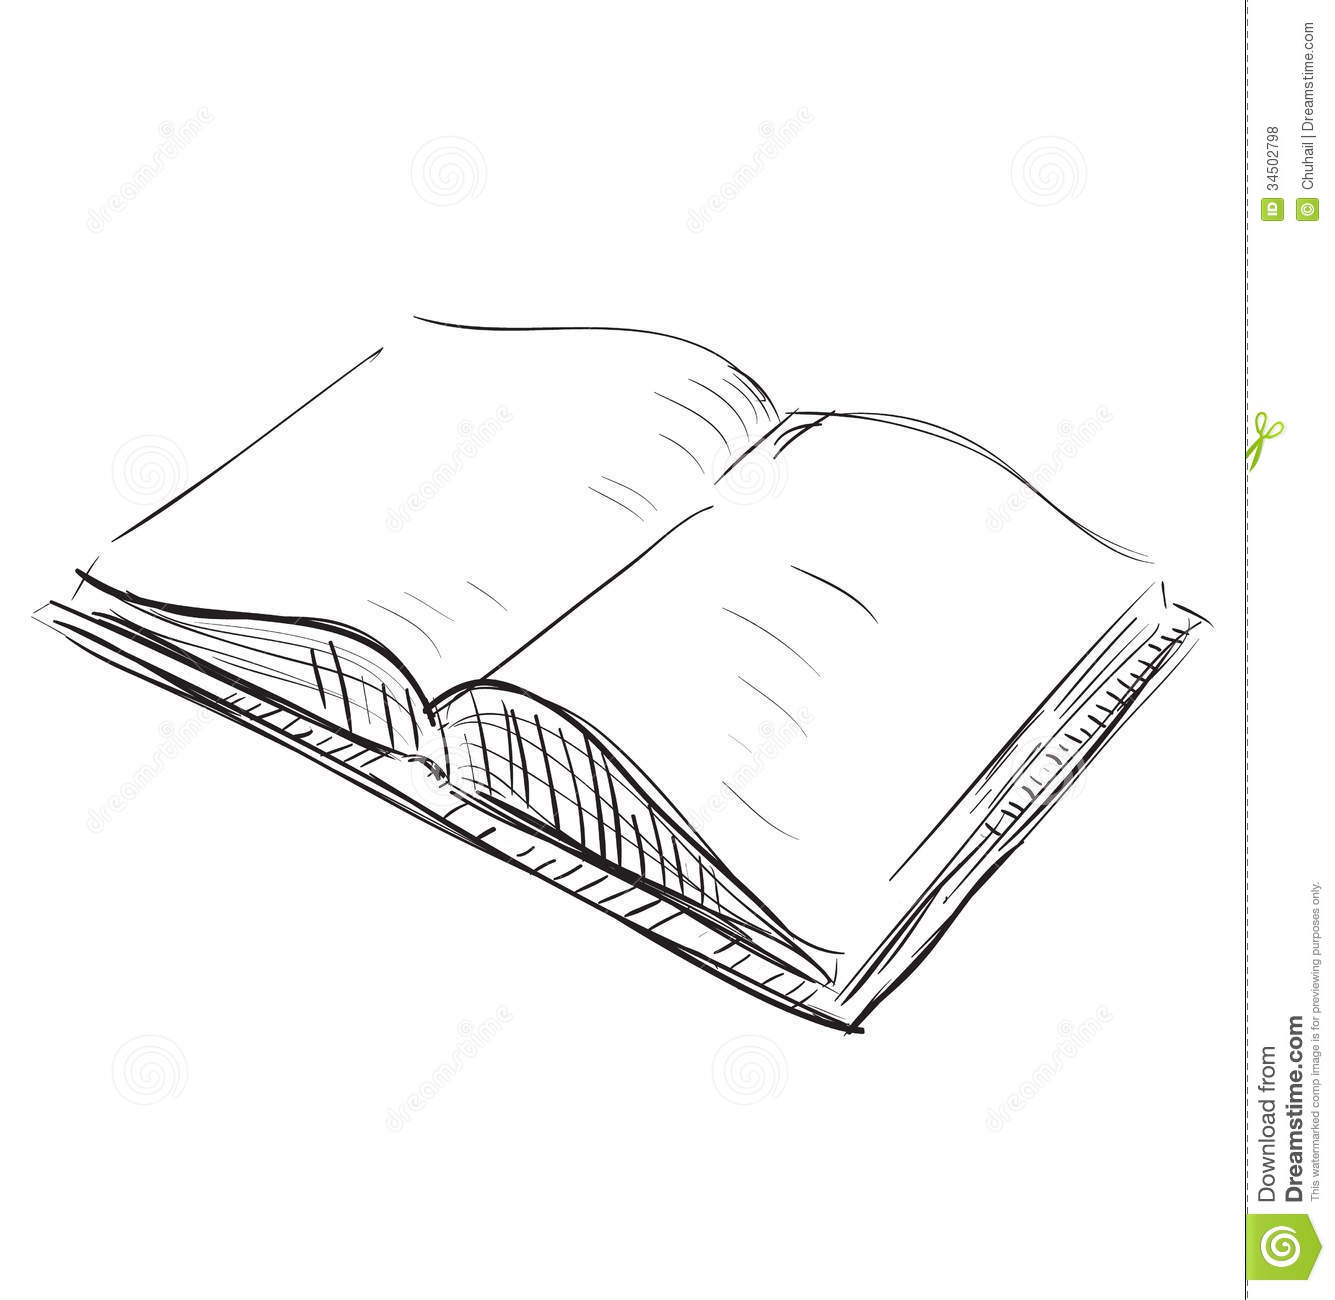 Open Book Sketch Icon Illustration Royalty Free Stock